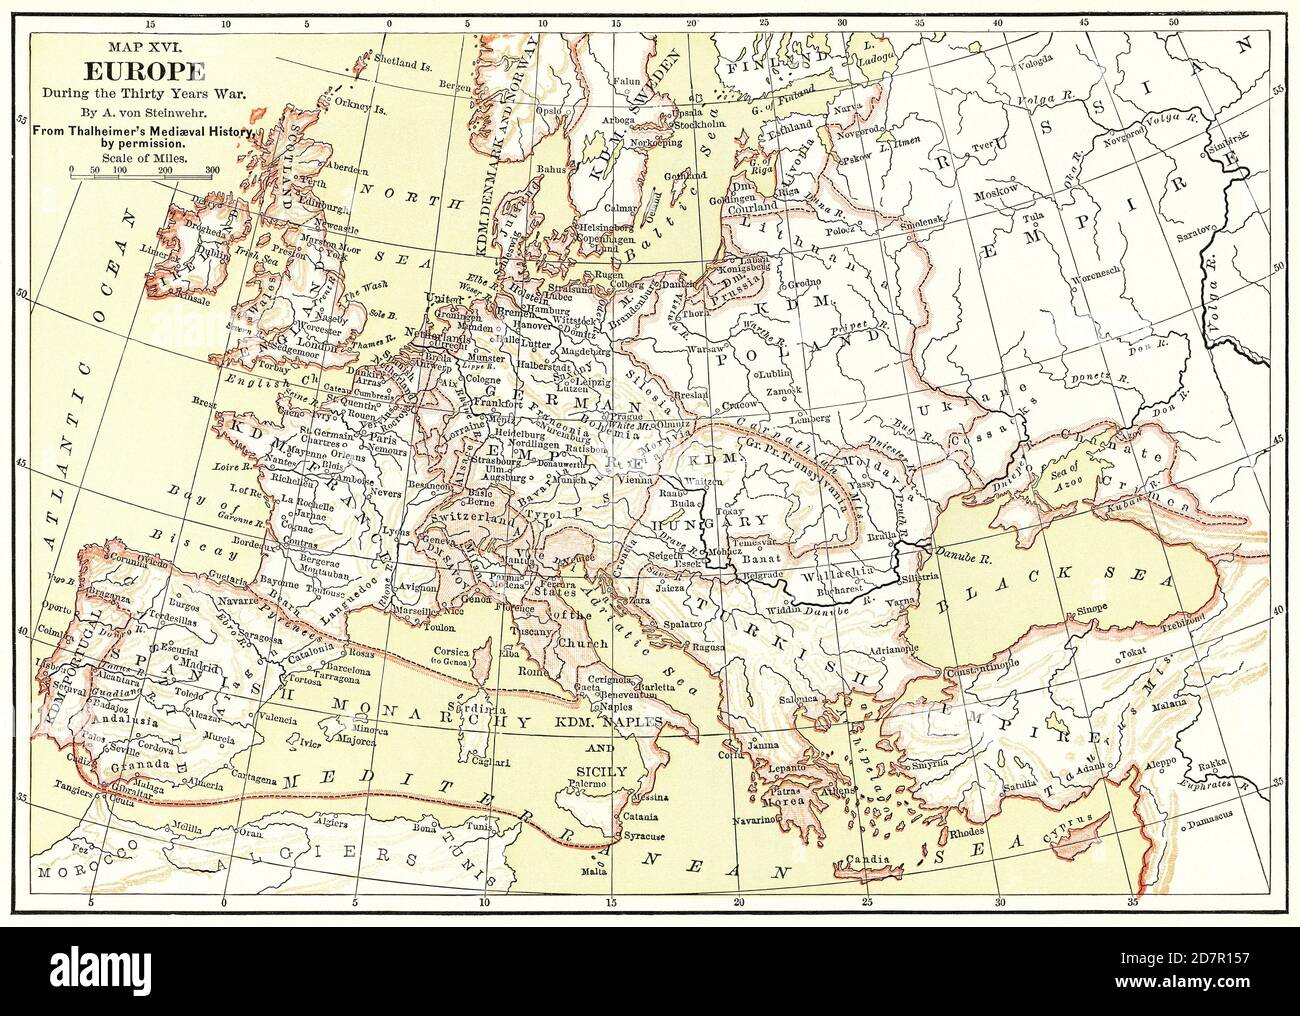 Map XVI, Europe, during the Thirty Years War, by A. von Steinwehr, from Thalheimer's Medieval History by Permission, Illustration, Ridpath's History of the World, Volume III, by John Clark Ridpath, LL. D., Merrill & Baker Publishers, New York, 1897 Stock Photo